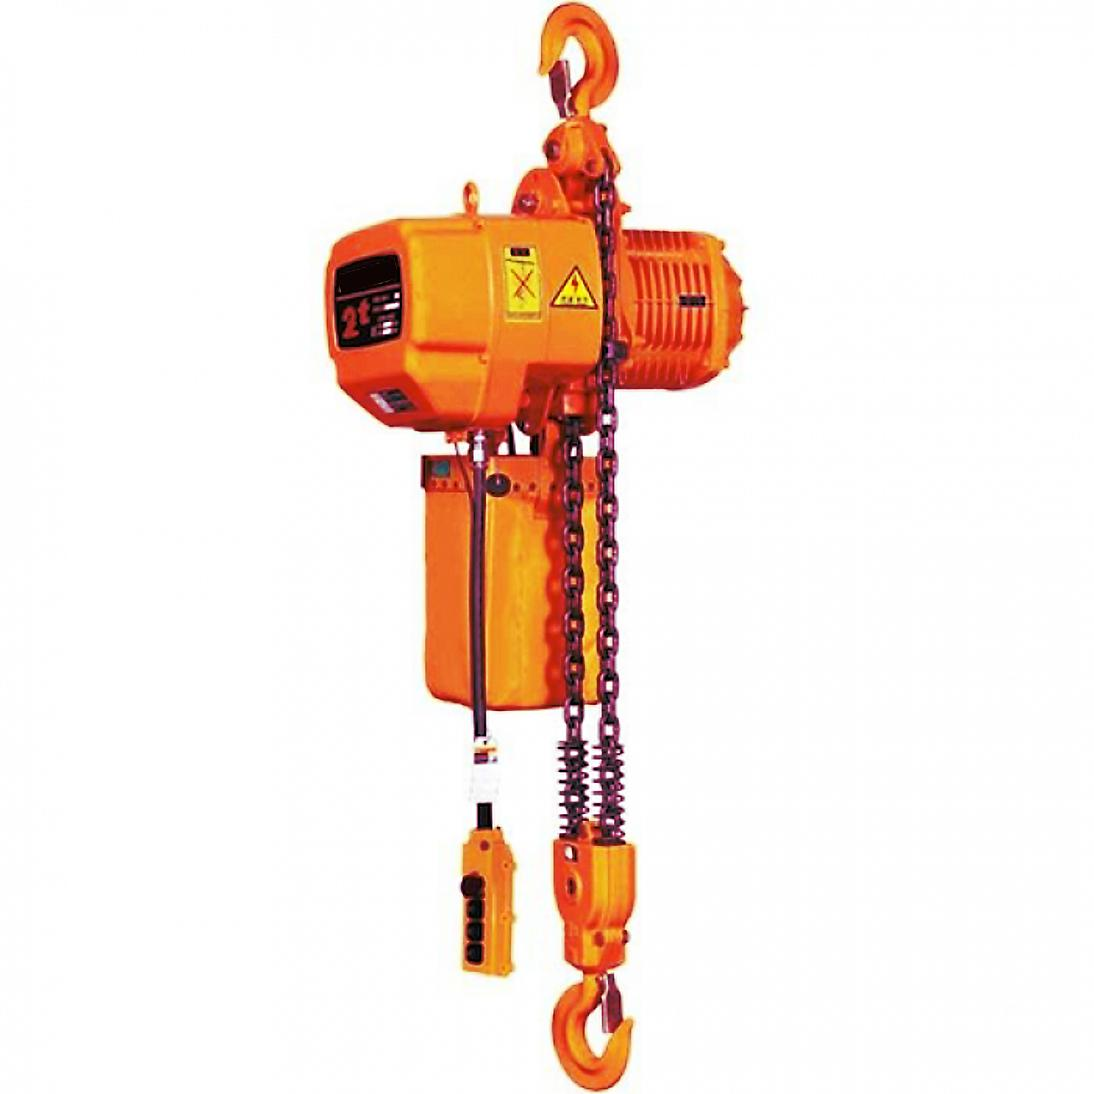 Himitzu 1 Ton x 8M 6.8m/min Electric Chain  Hoist